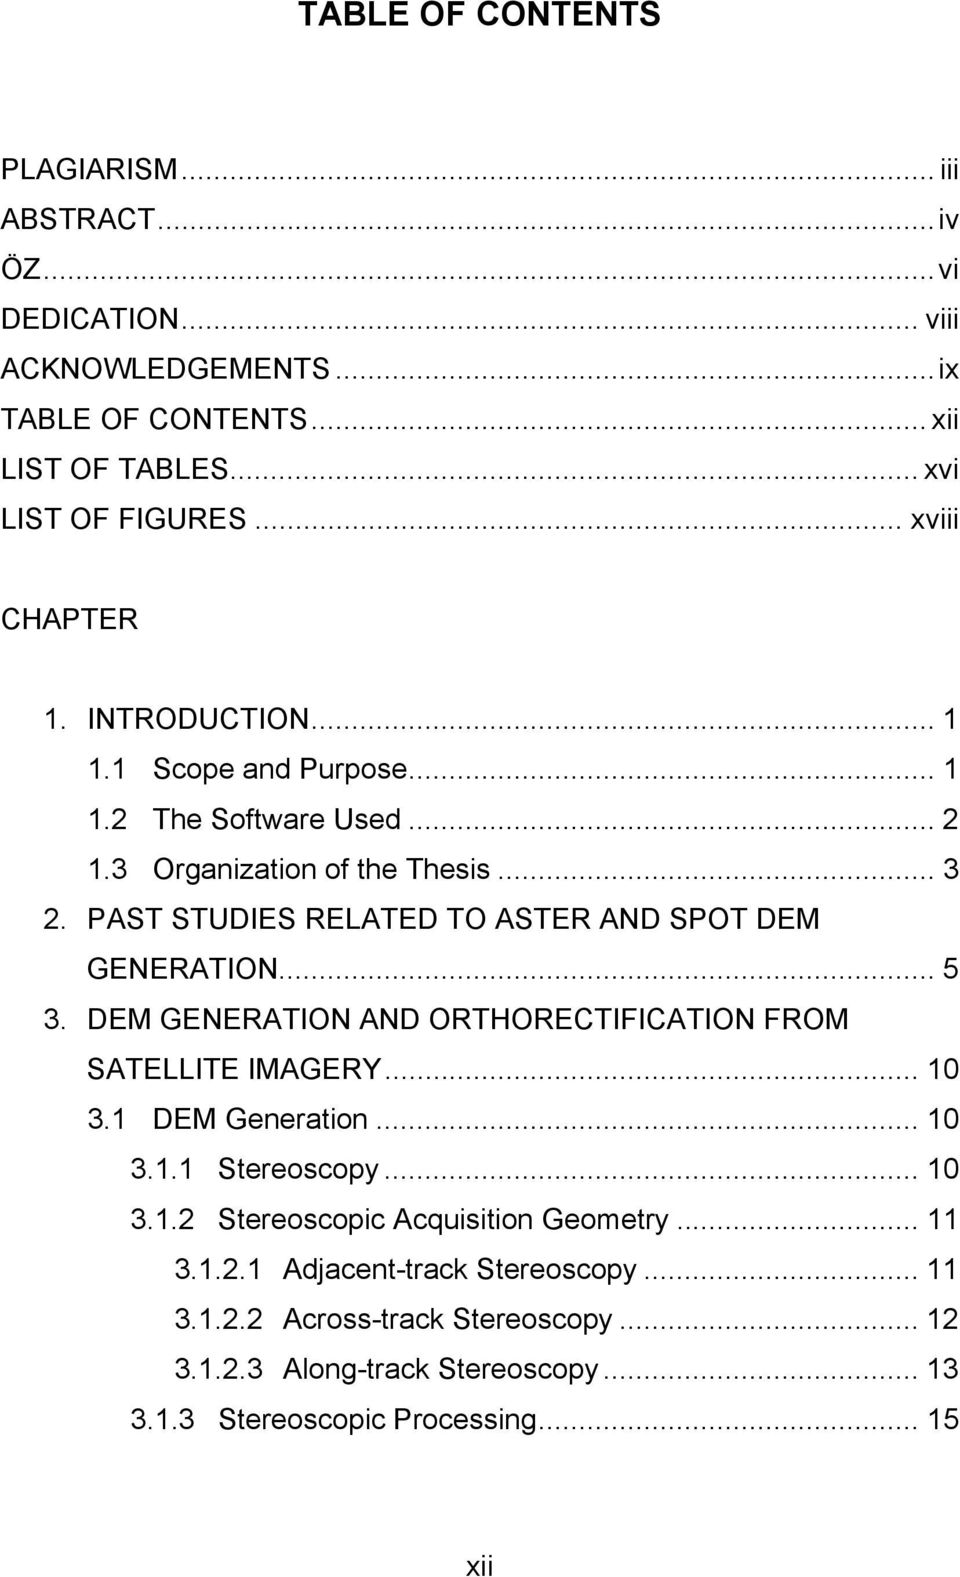 PAST STUDIES RELATED TO ASTER AND SPOT DEM GENERATION... 5 3. DEM GENERATION AND ORTHORECTIFICATION FROM SATELLITE IMAGERY... 10 3.1 DEM Generaton... 10 3.1.1 Stereoscopy.